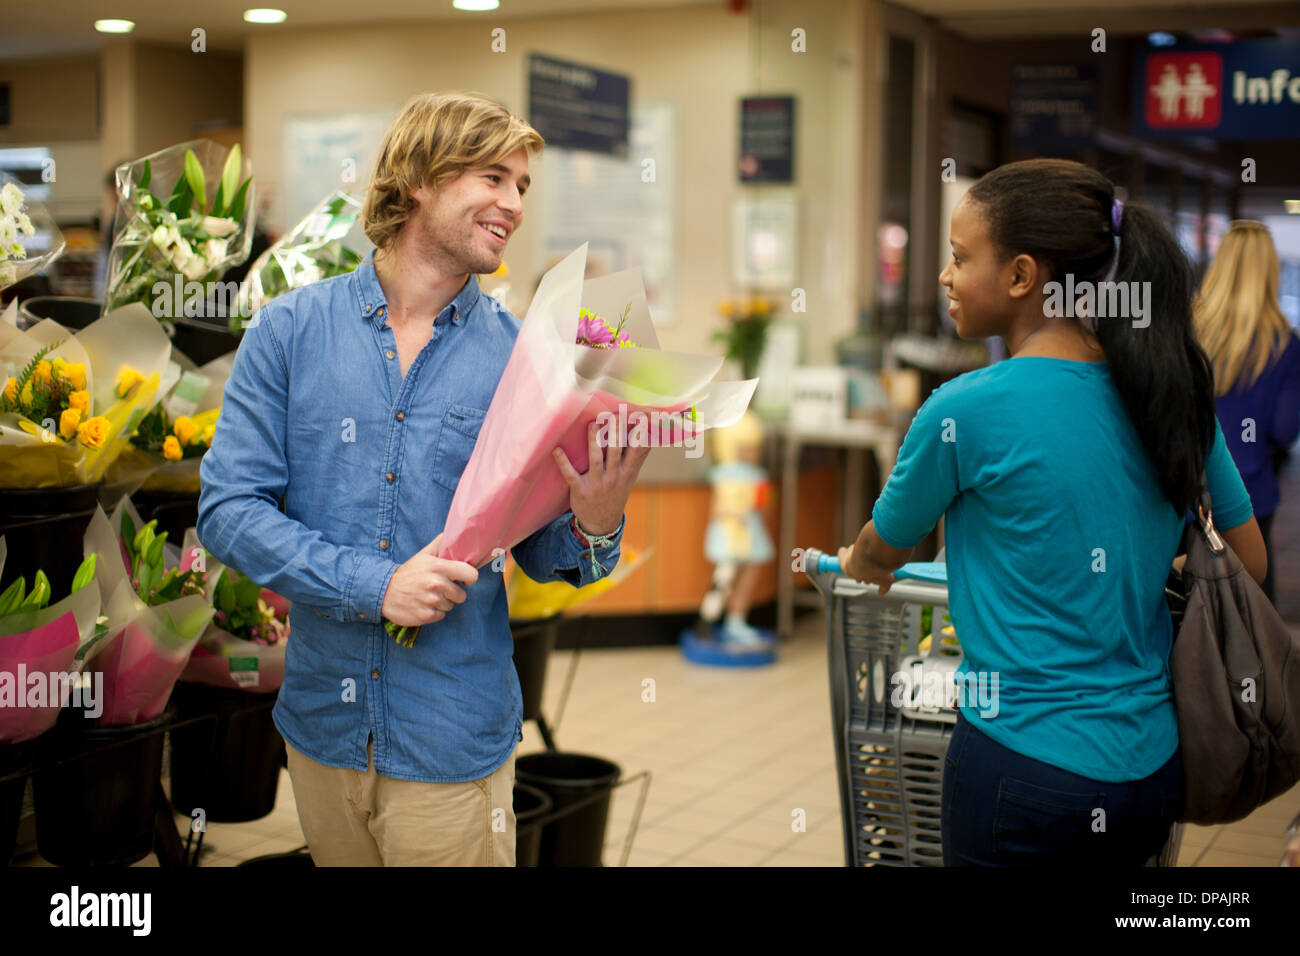 Young man selecting bunch of flowers whilst shopping - Stock Image